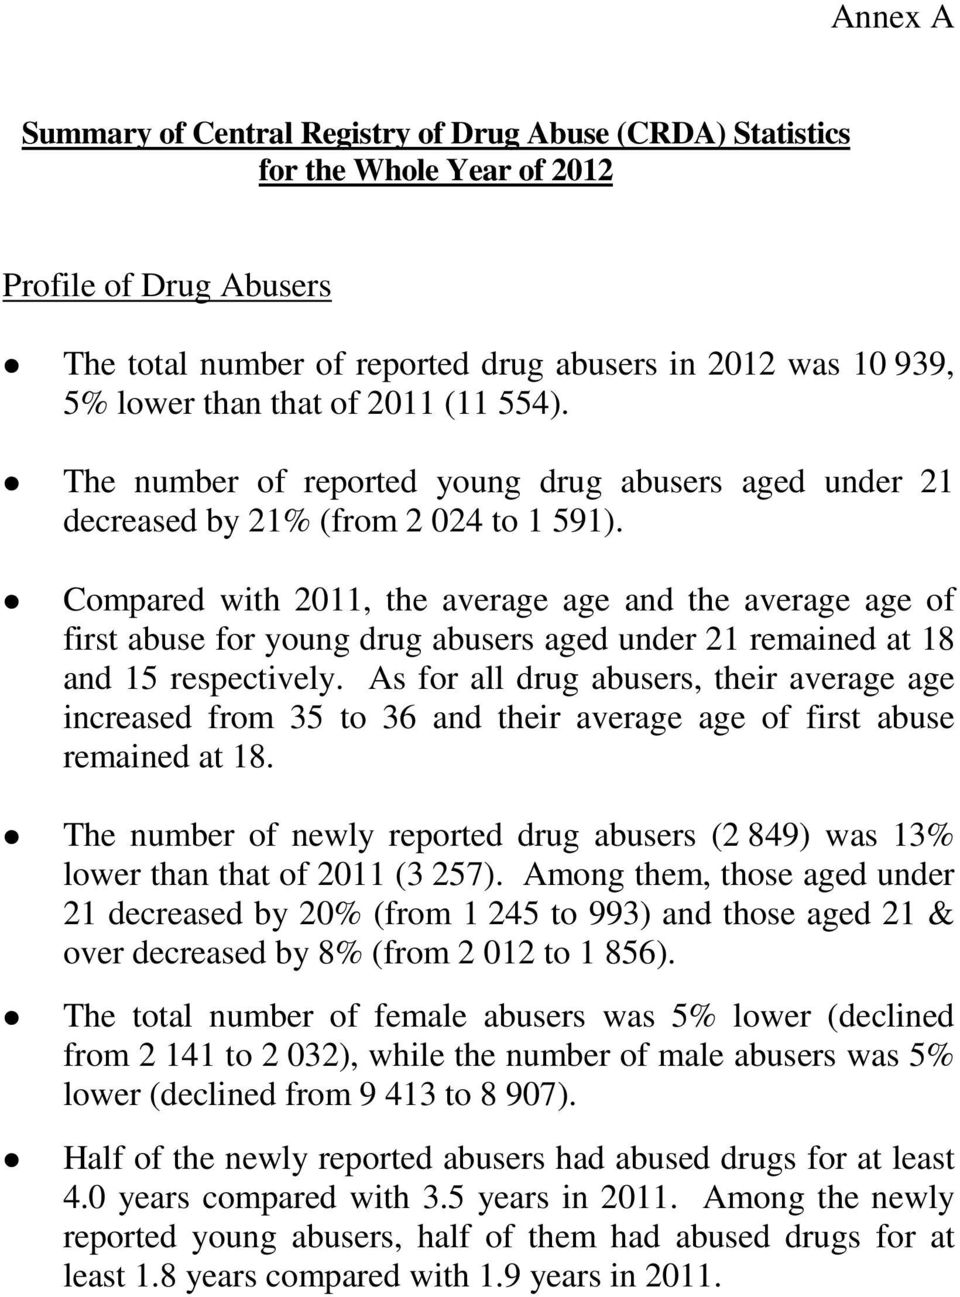 Compared with 2011, the average age and the average age of first abuse for young drug abusers aged under 21 remained at 18 and 15 respectively.